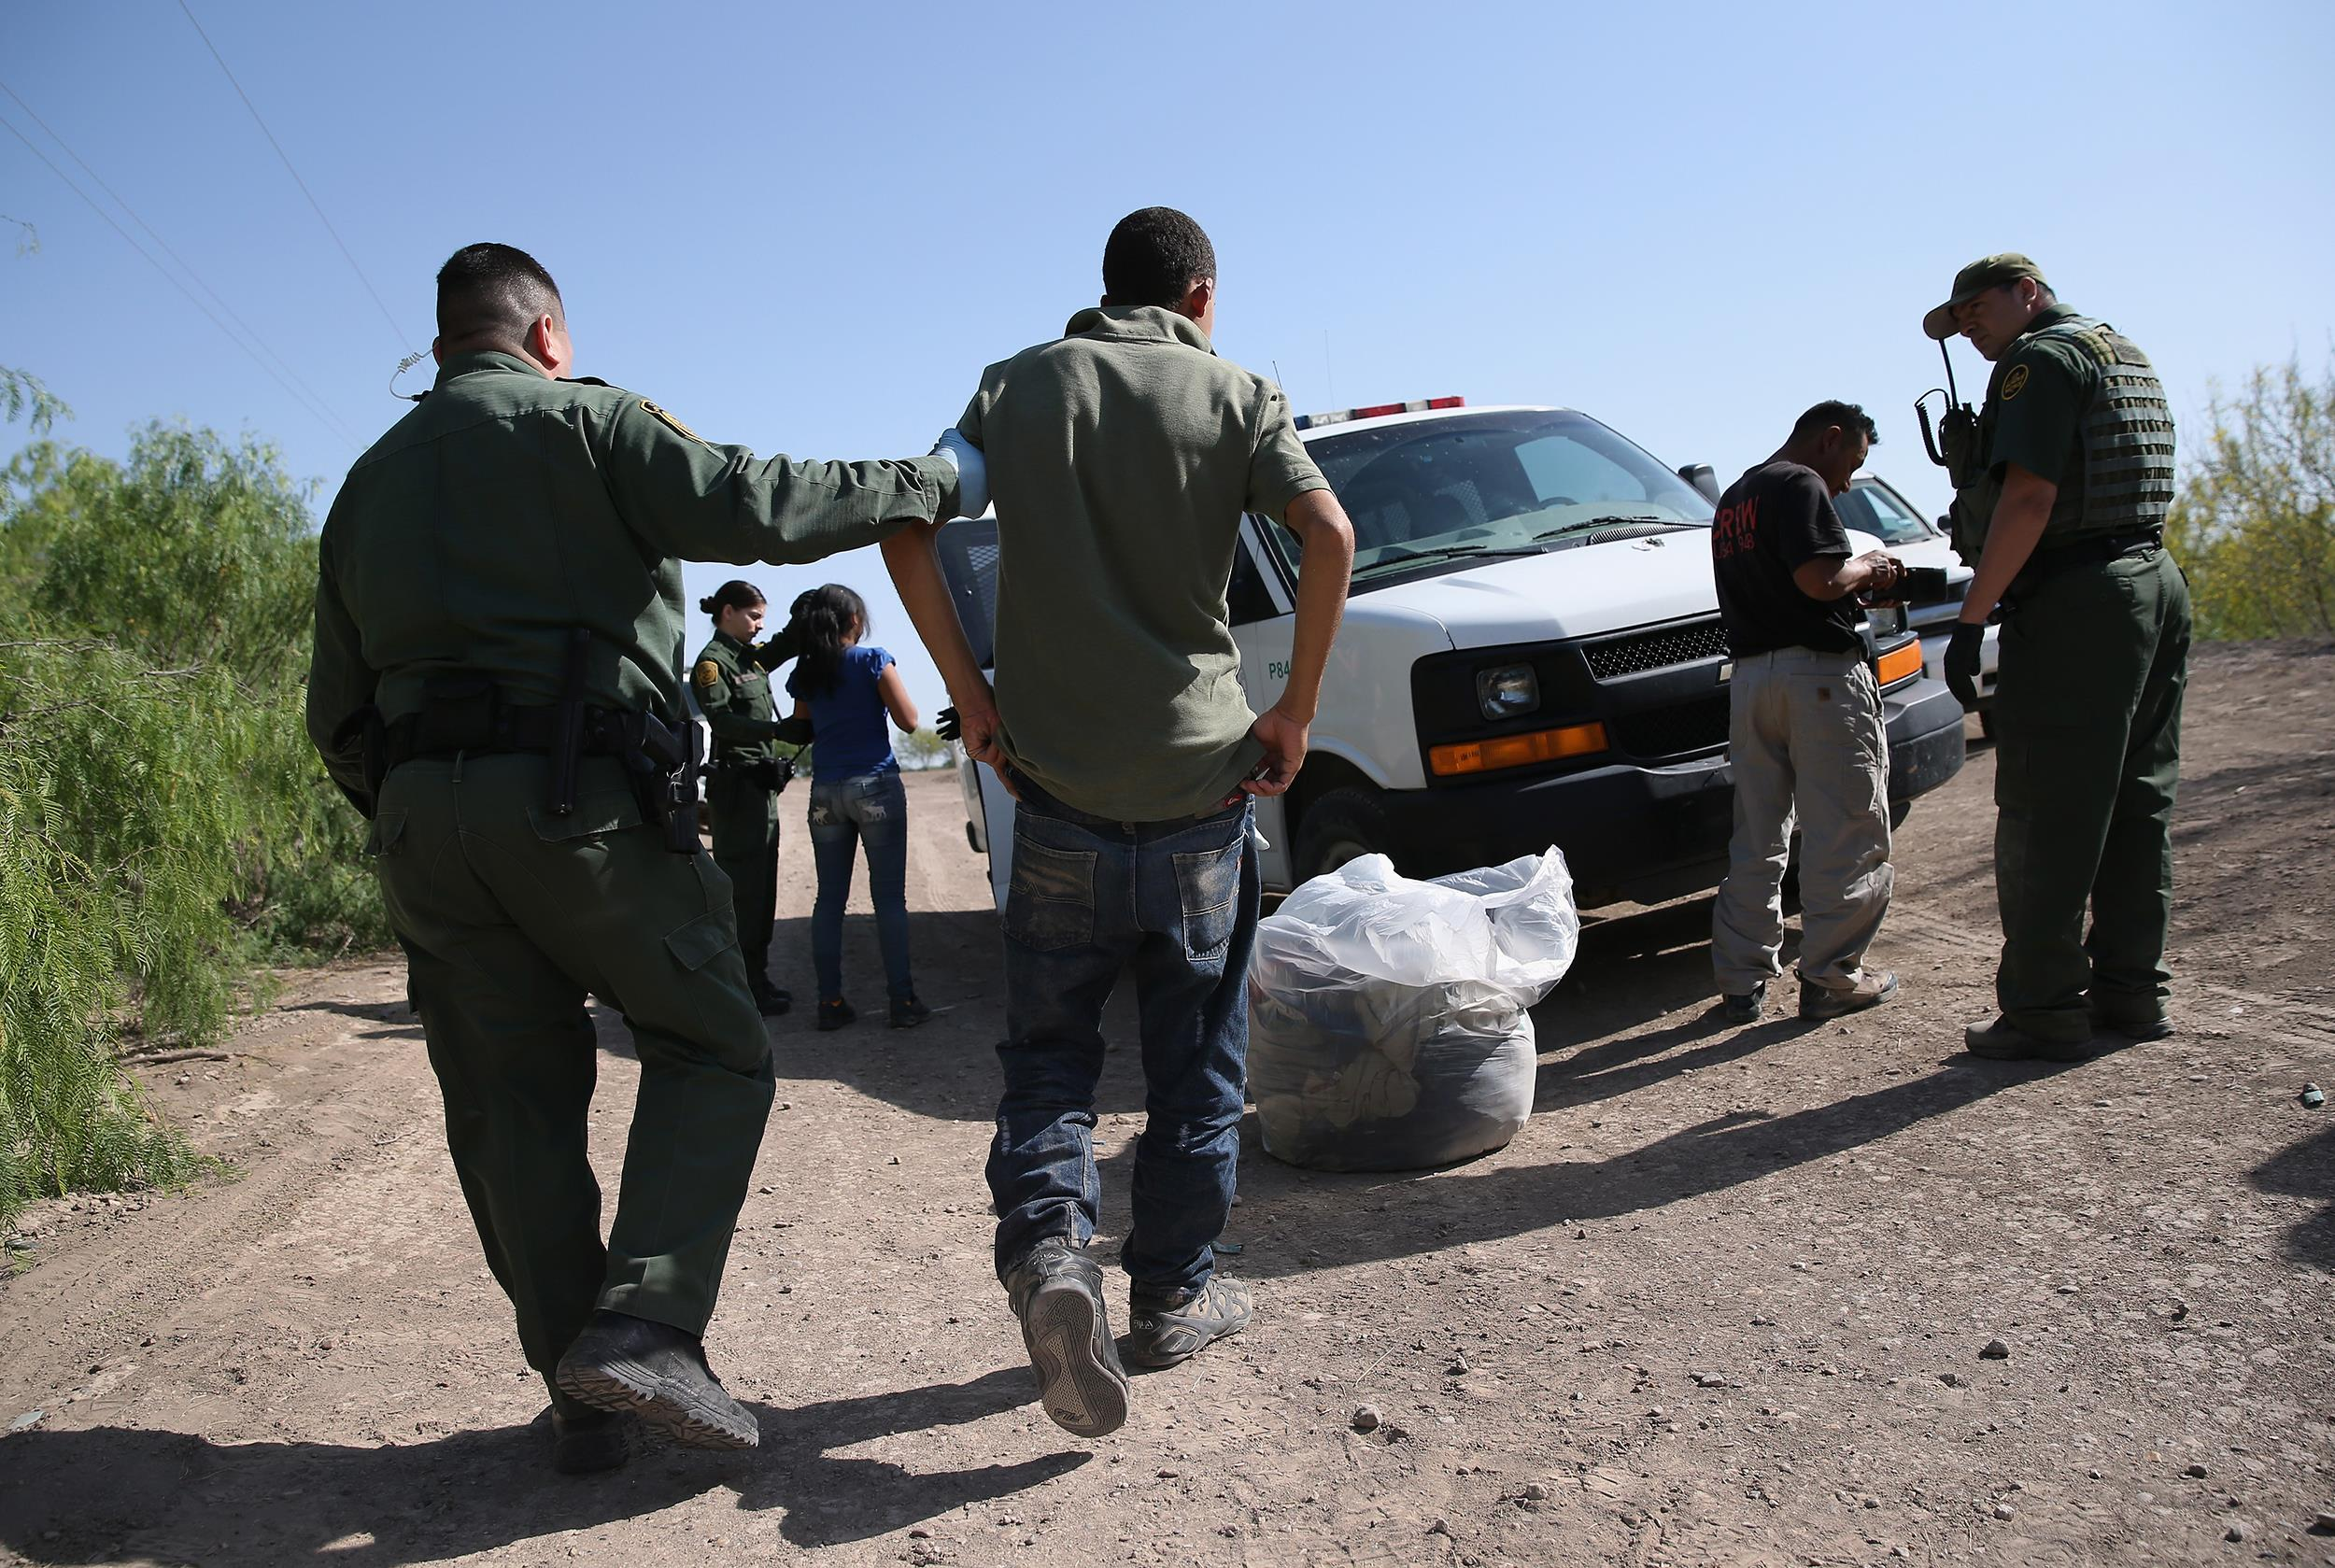 Image: U.S. Border Patrol agents detain undocumented immigrants